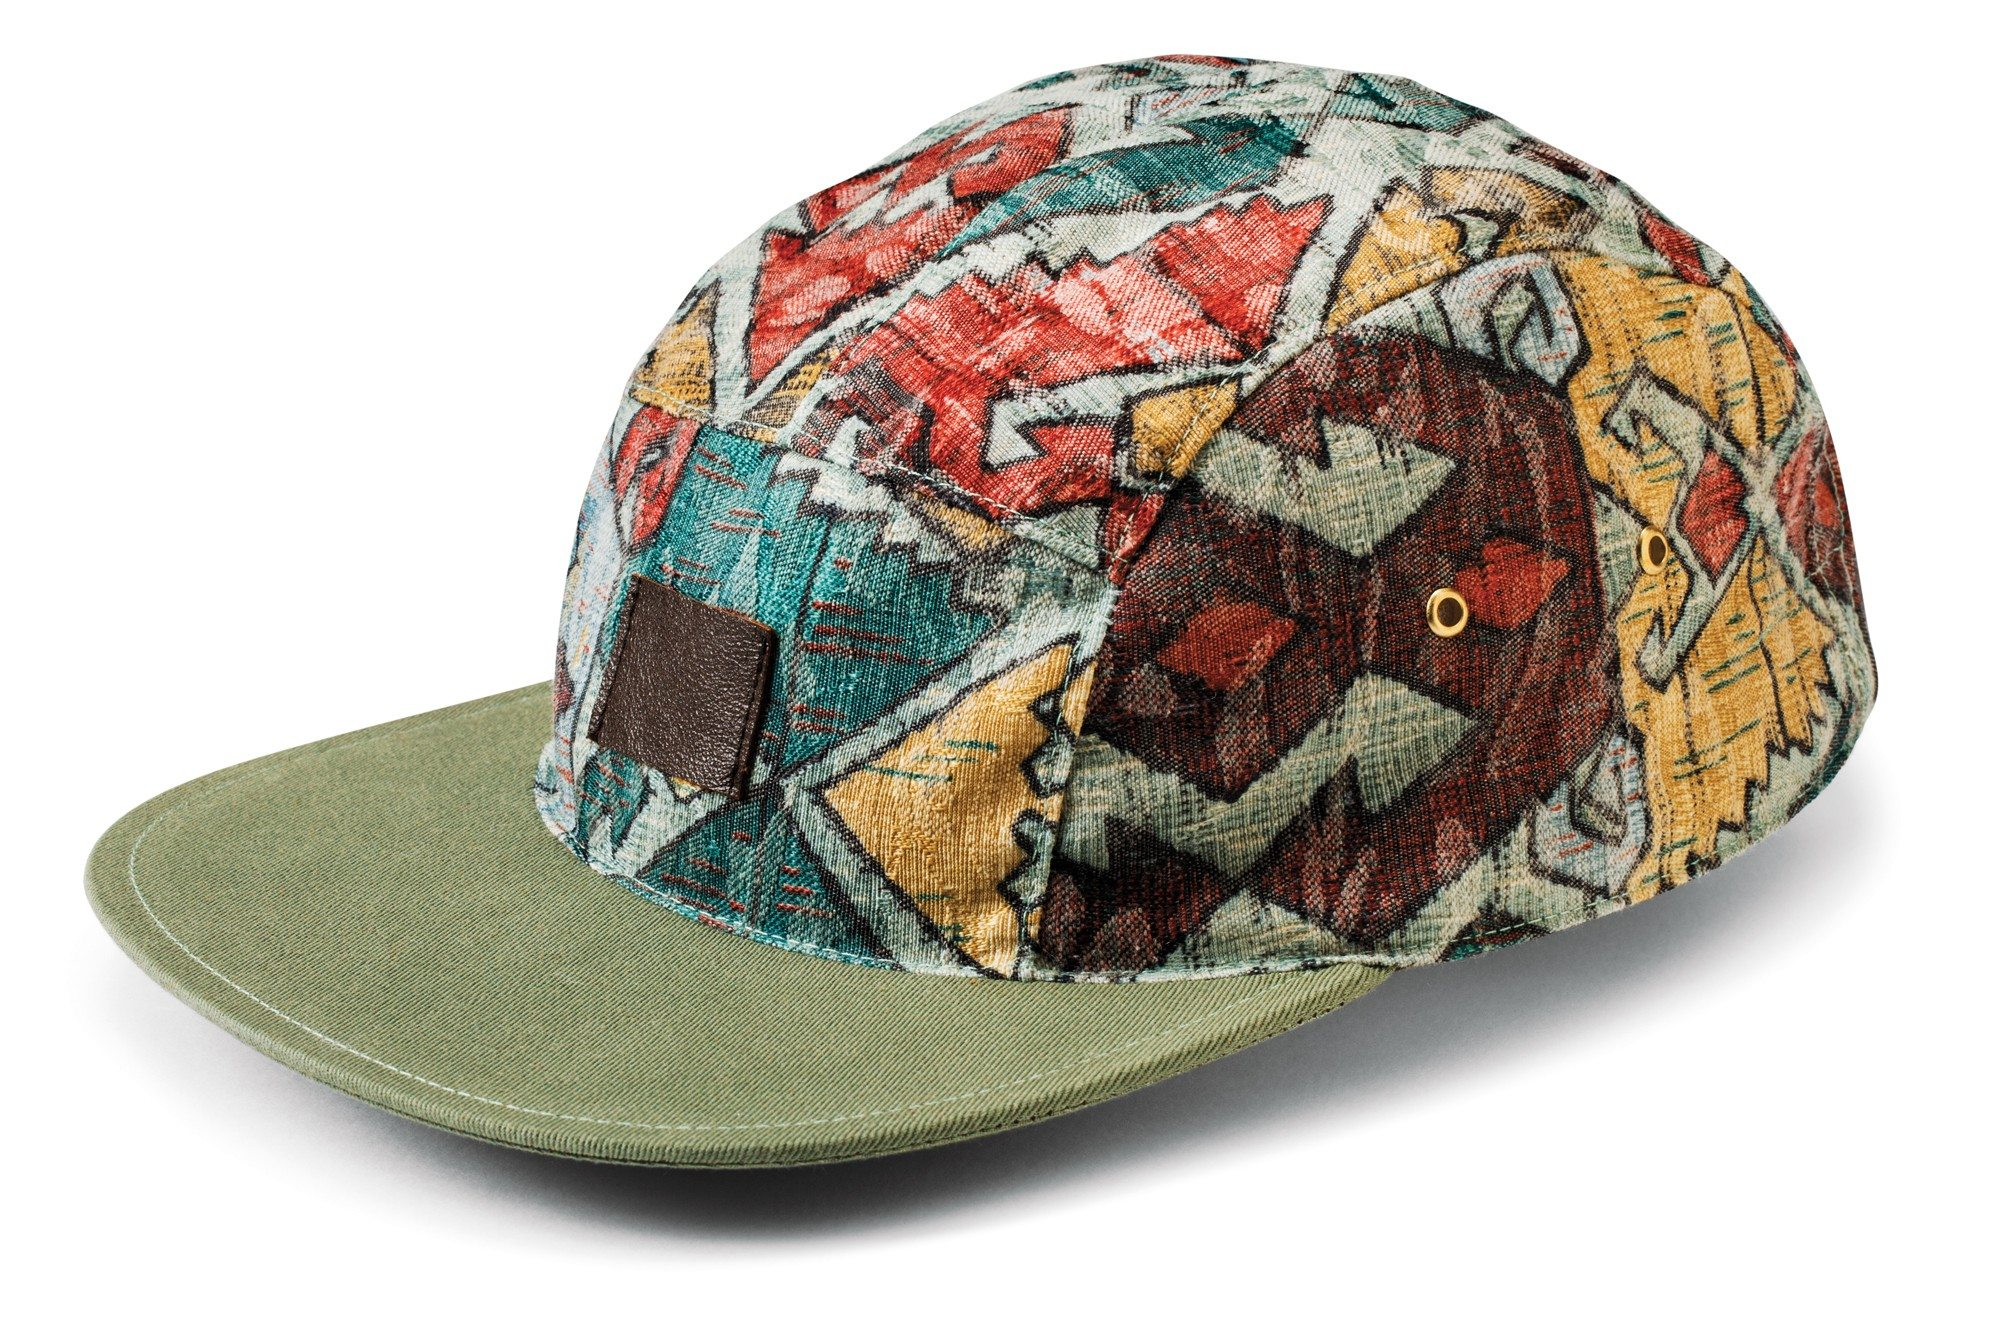 Hat $50 by Nathan Dueck